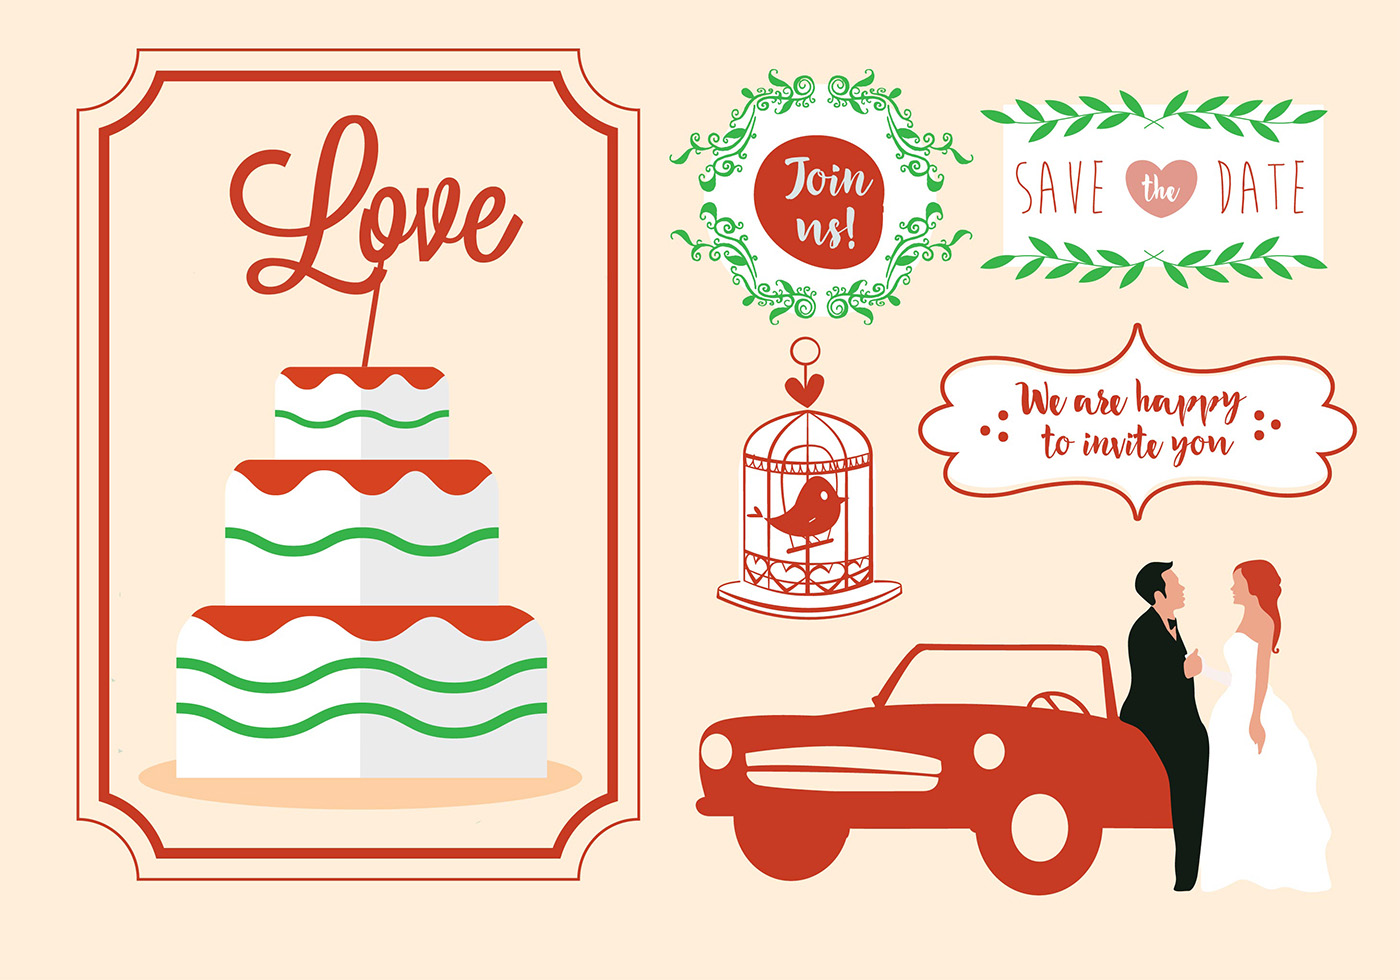 Free Vector Wedding Card Design Download Free Vectors